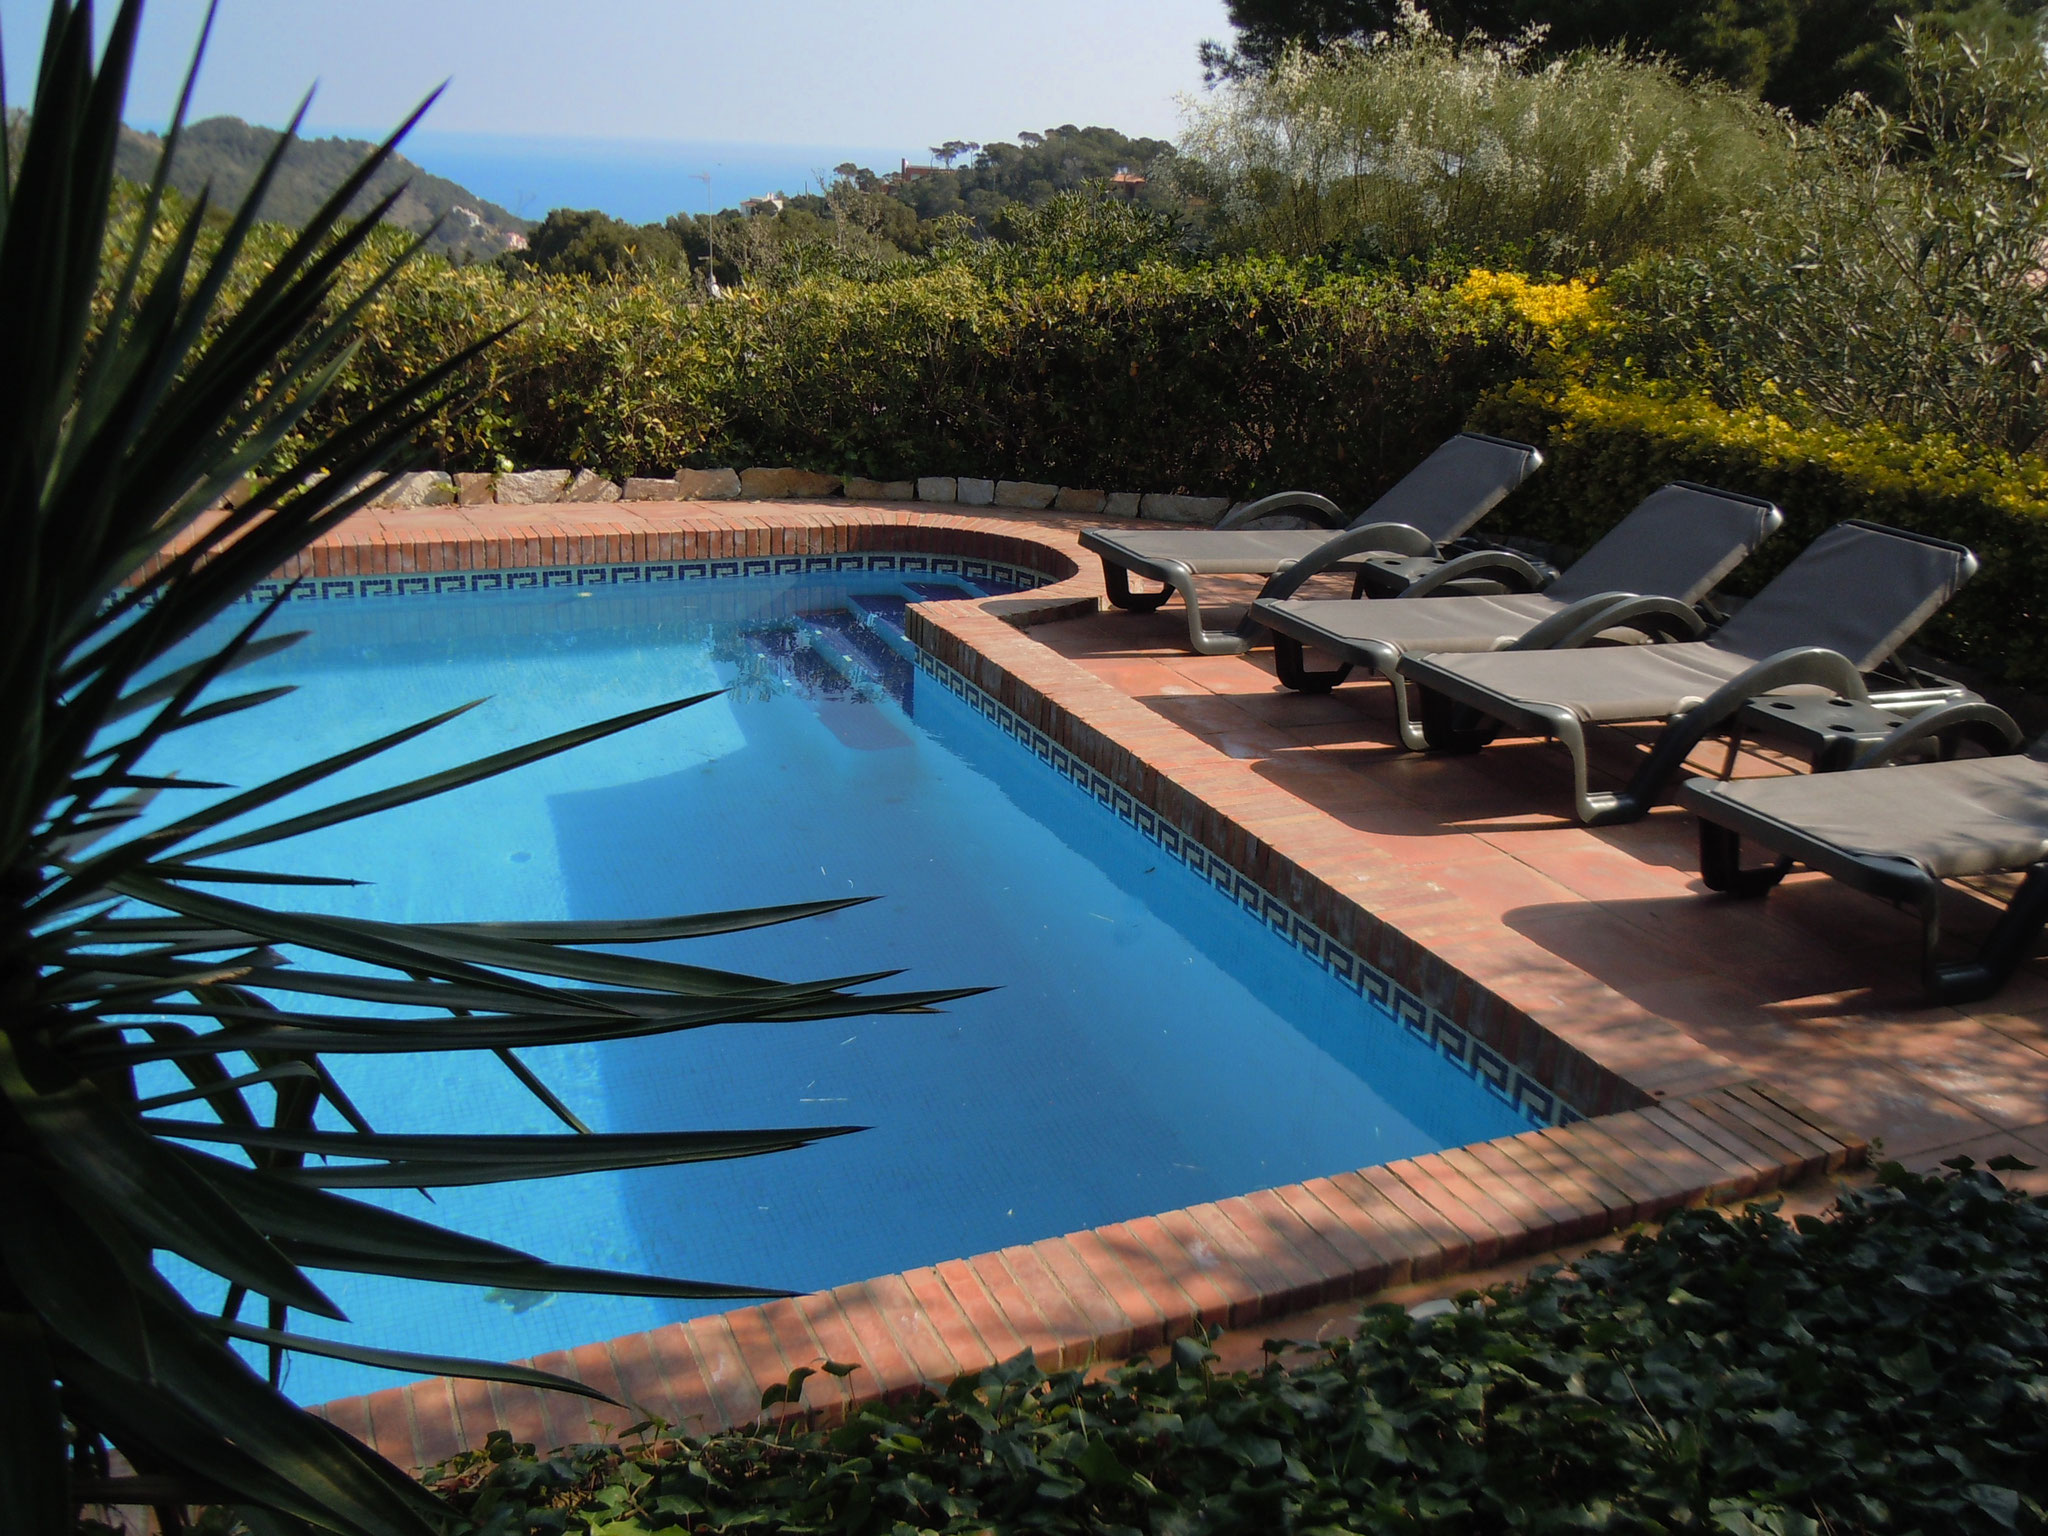 Our sunny private pool